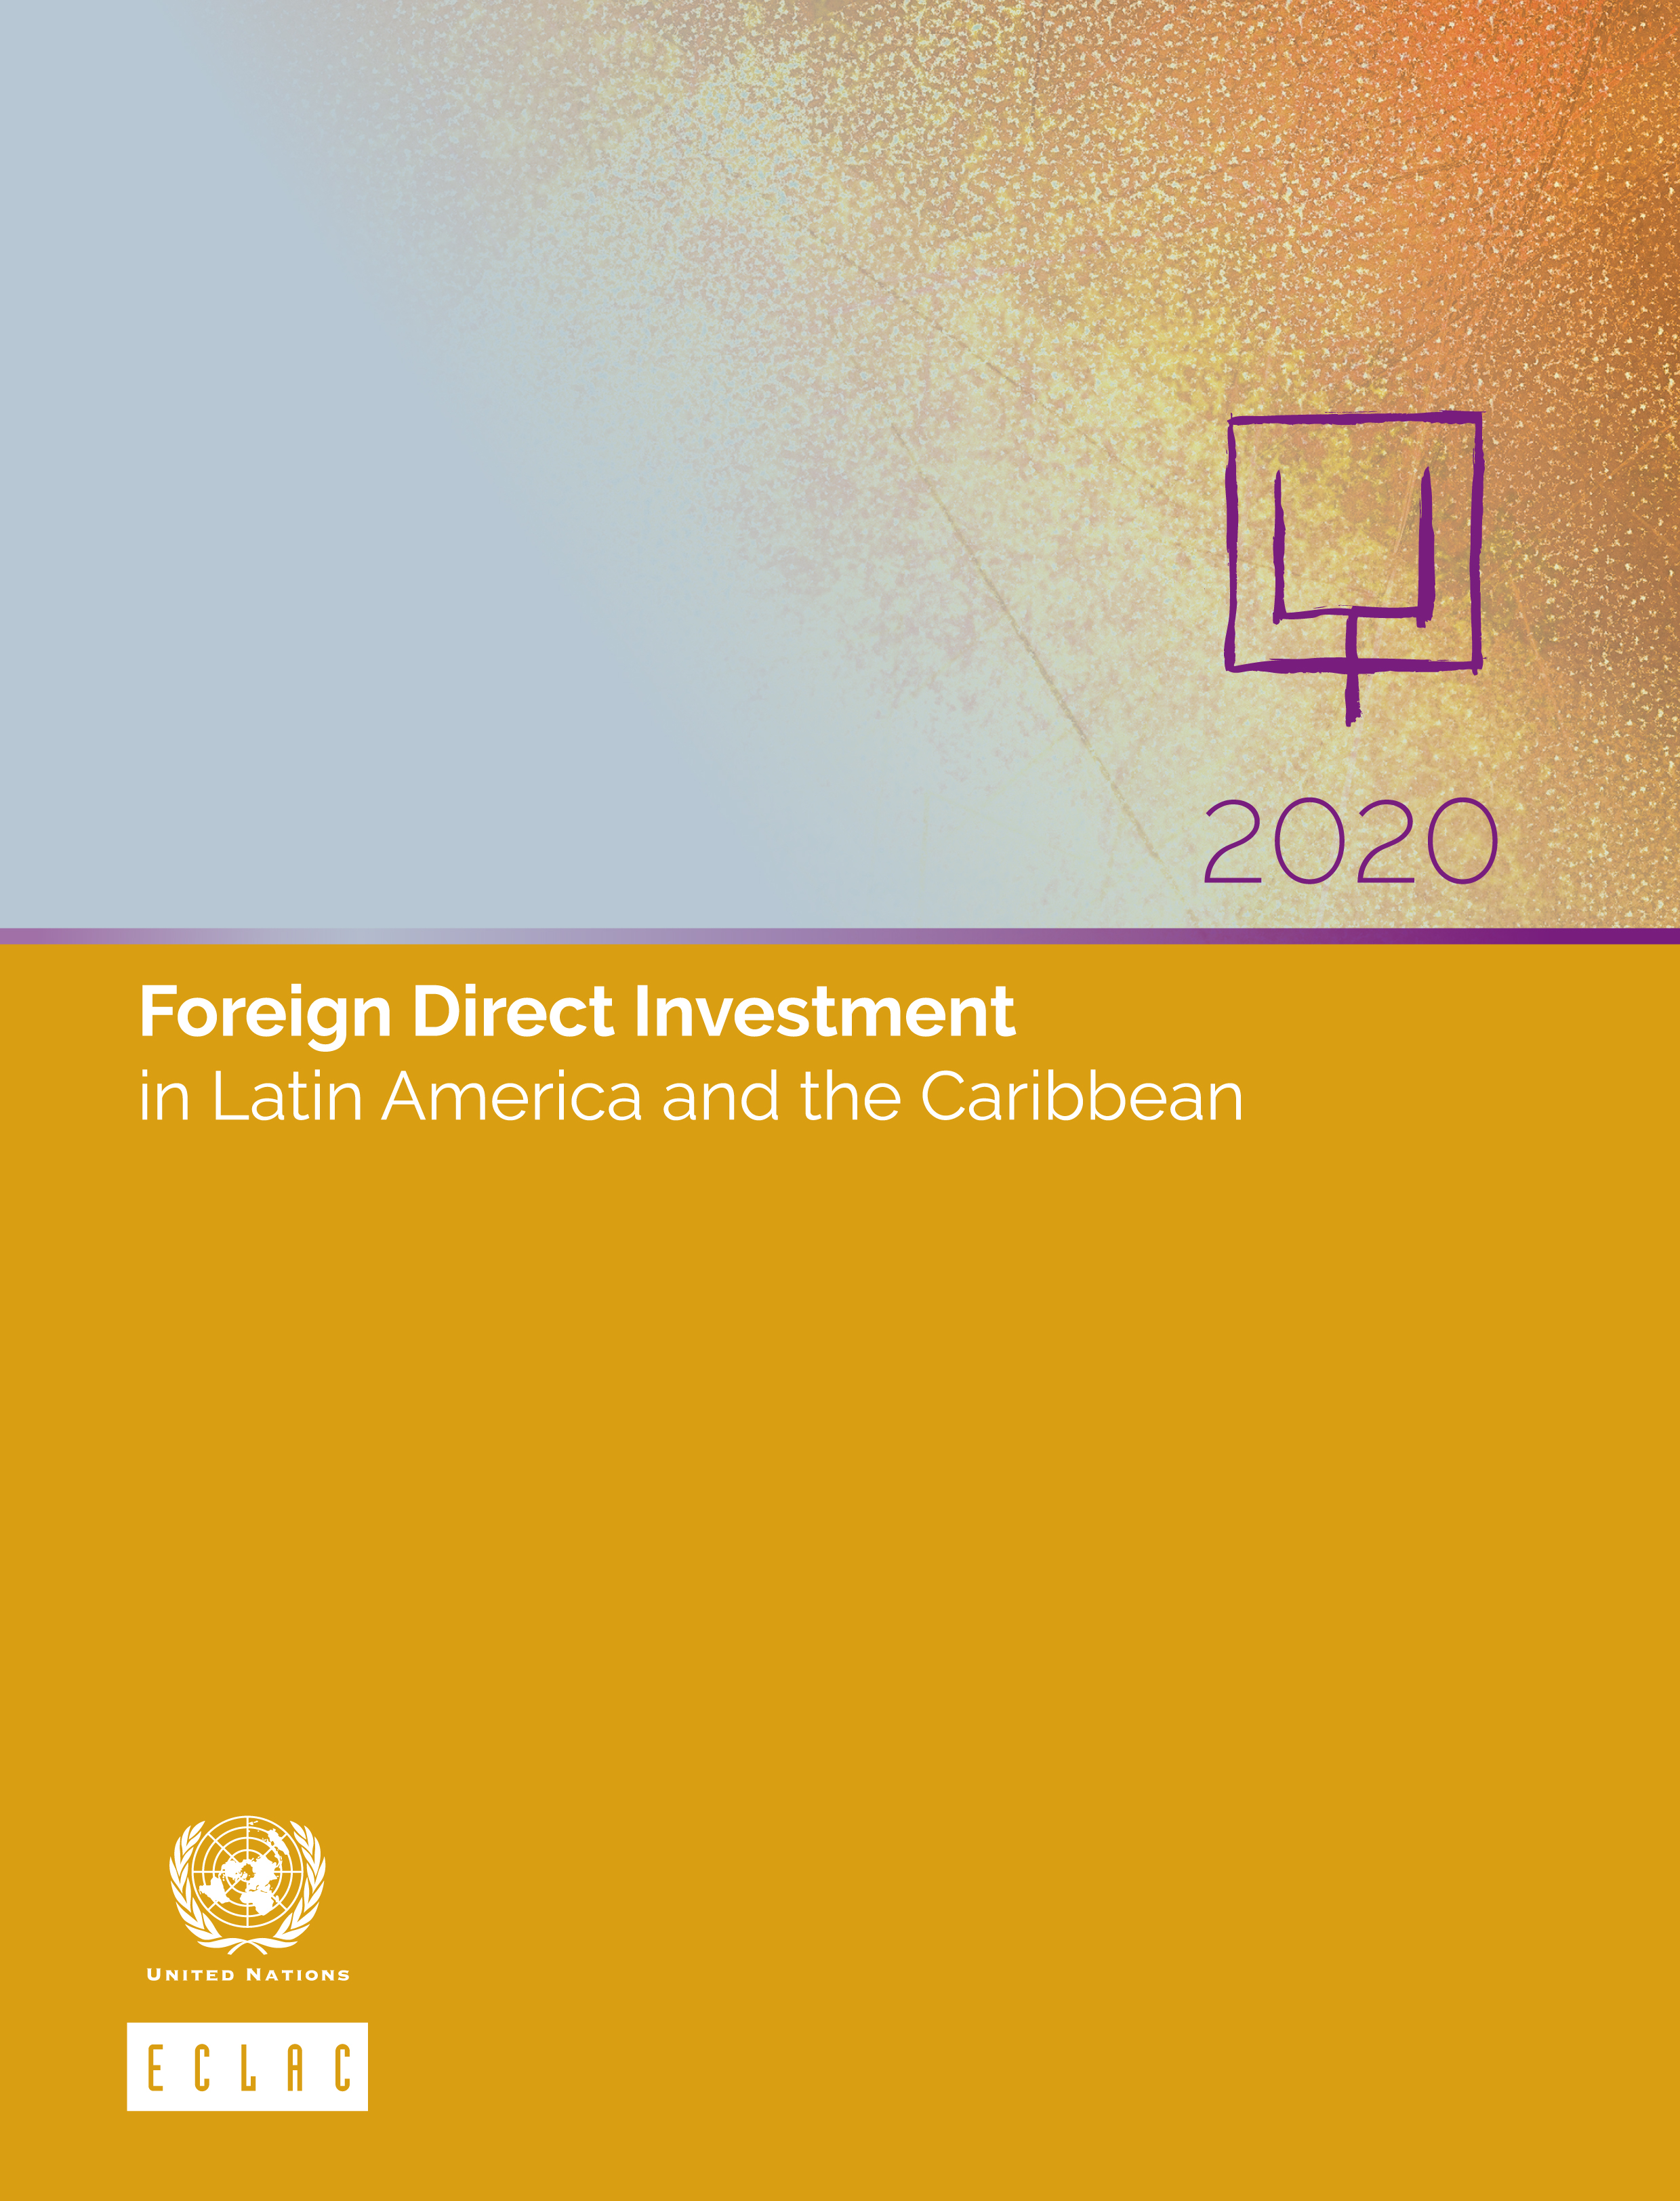 FOREIGN DIRECT INVEST LAT AME 2020